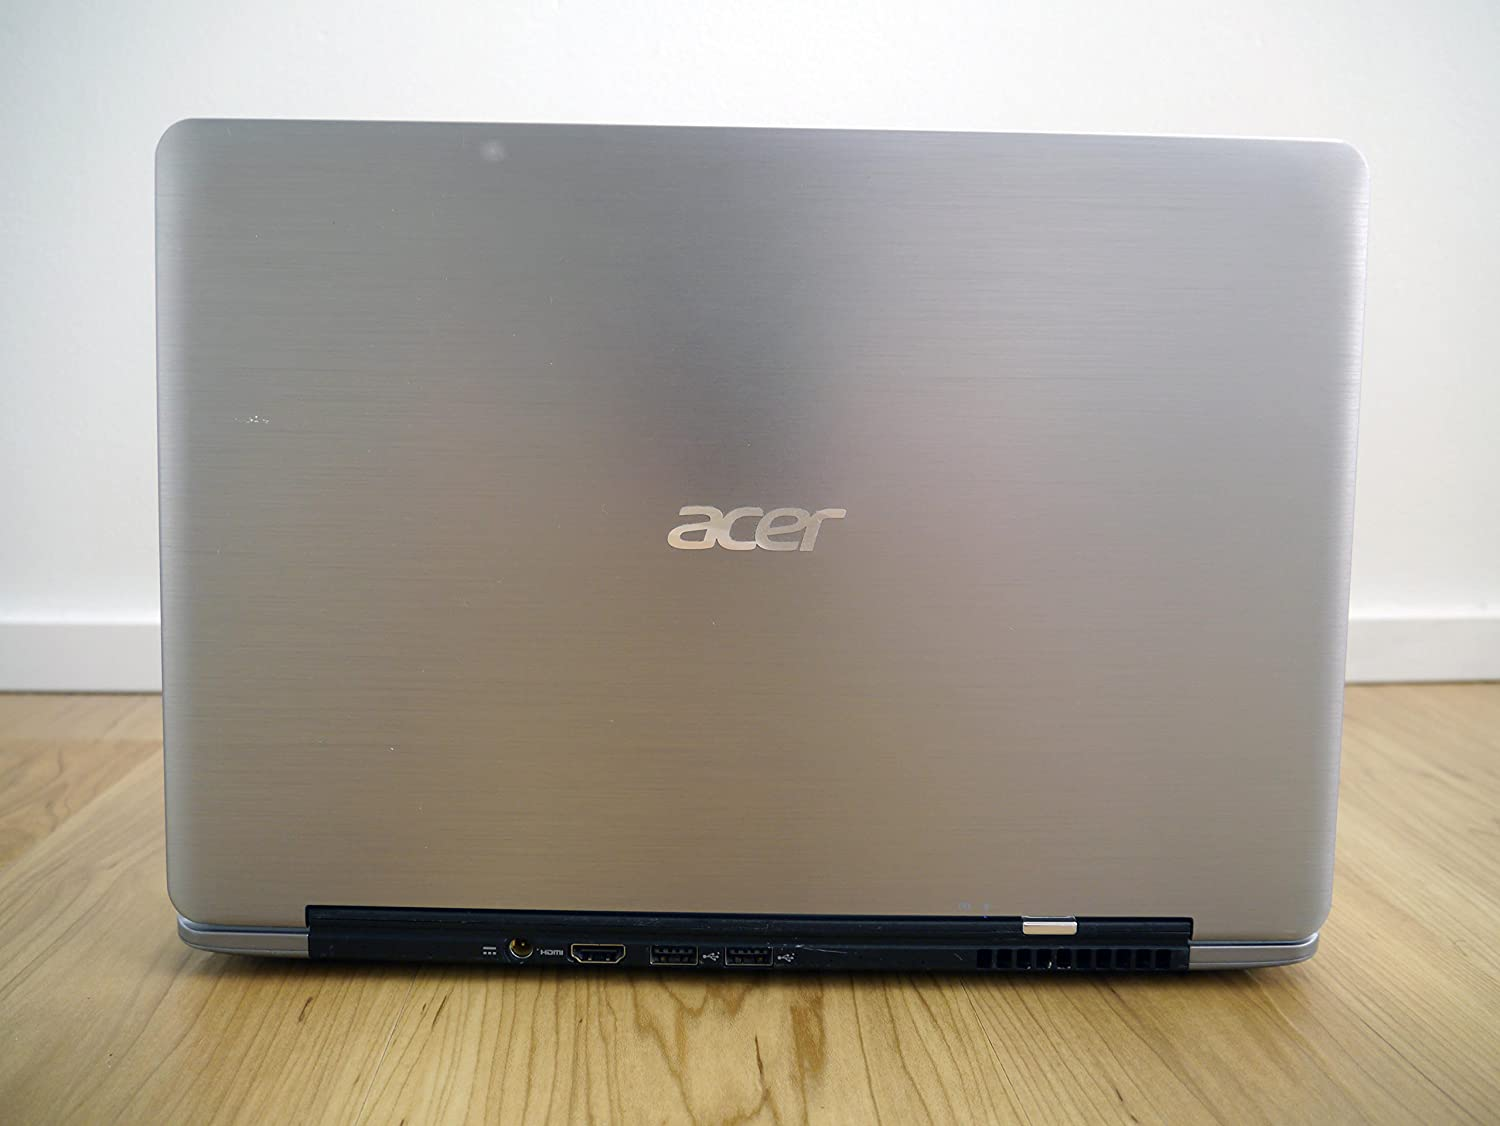 Acer S3 391 6046 133 Inch Ultrabook Intel Core I3 Aspire Laptop Parts Diagram 2367m 4gb Memory 320gb Hdd And 20gb Ssd Windows 8 Computers Accessories